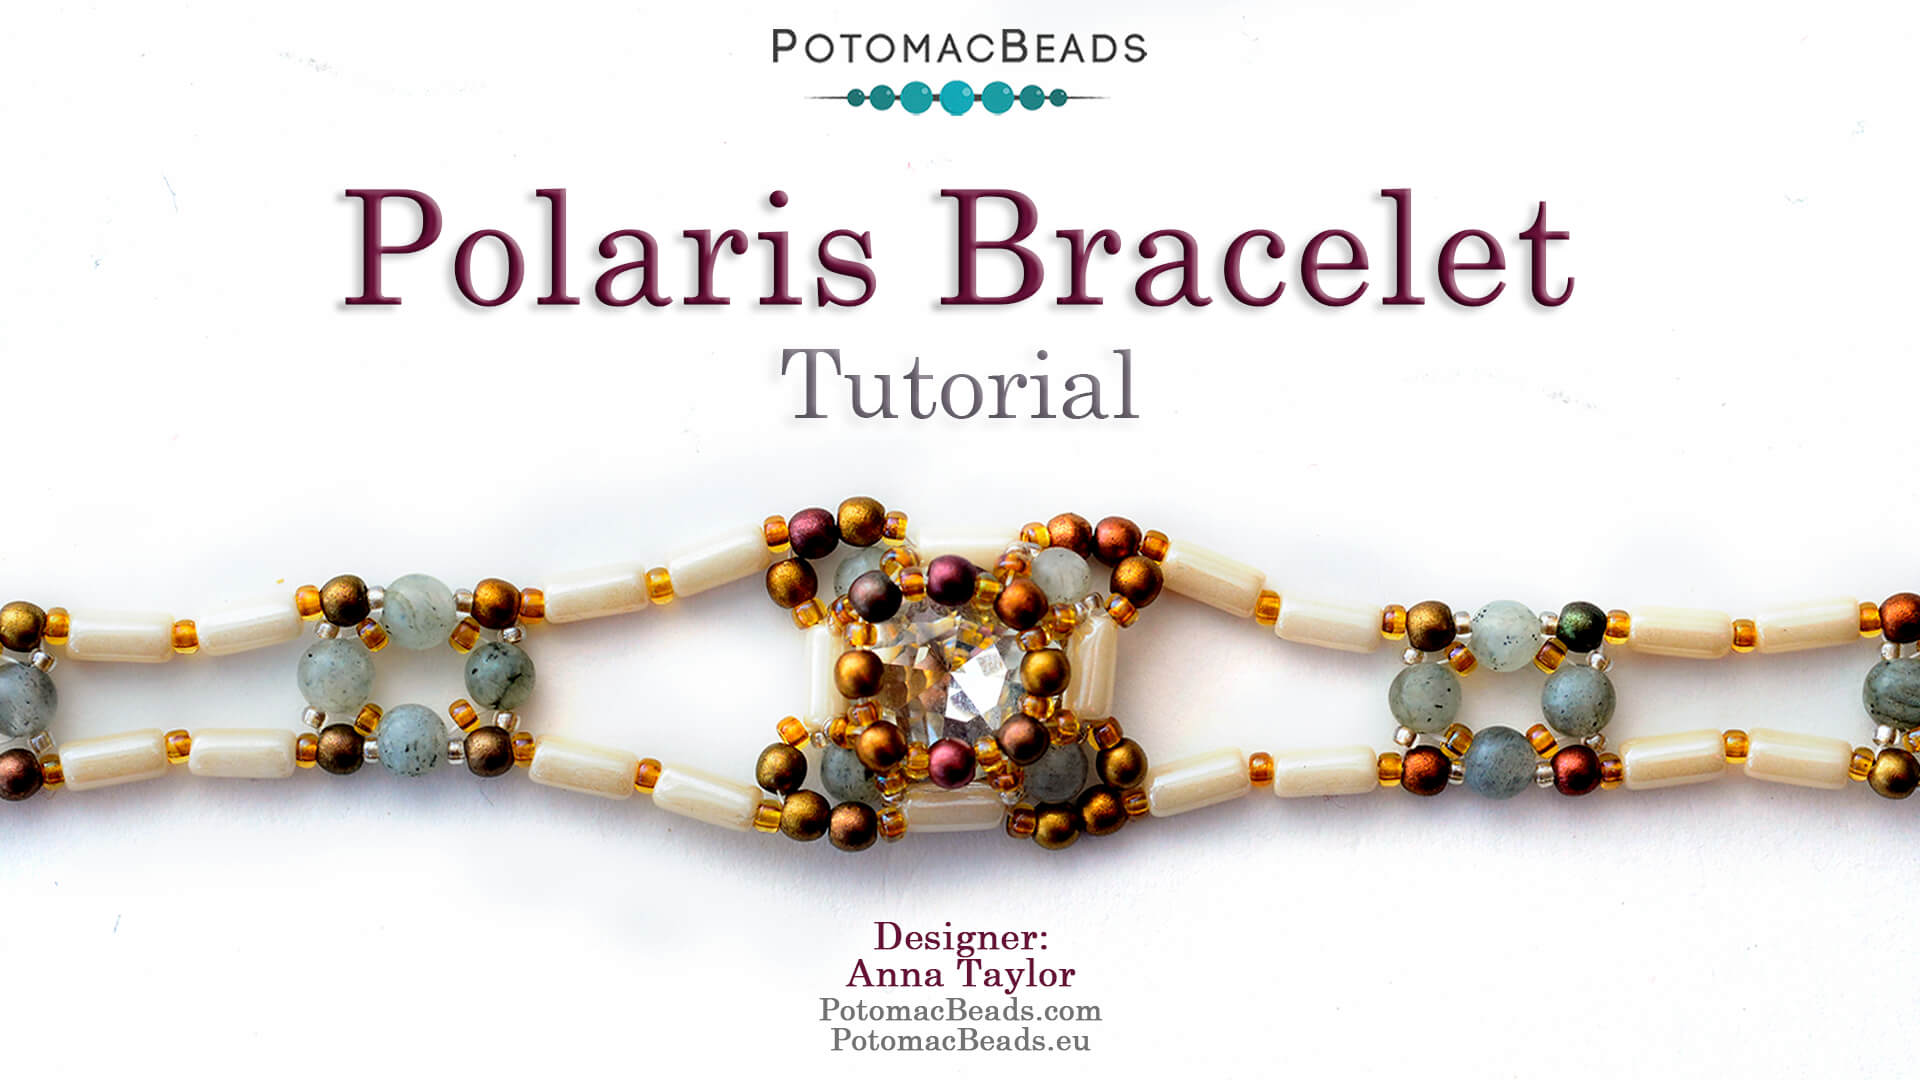 How to Bead Jewelry / Videos Sorted by Beads / Tubelet Bead Videos / Polaris Bracelet Tutorial